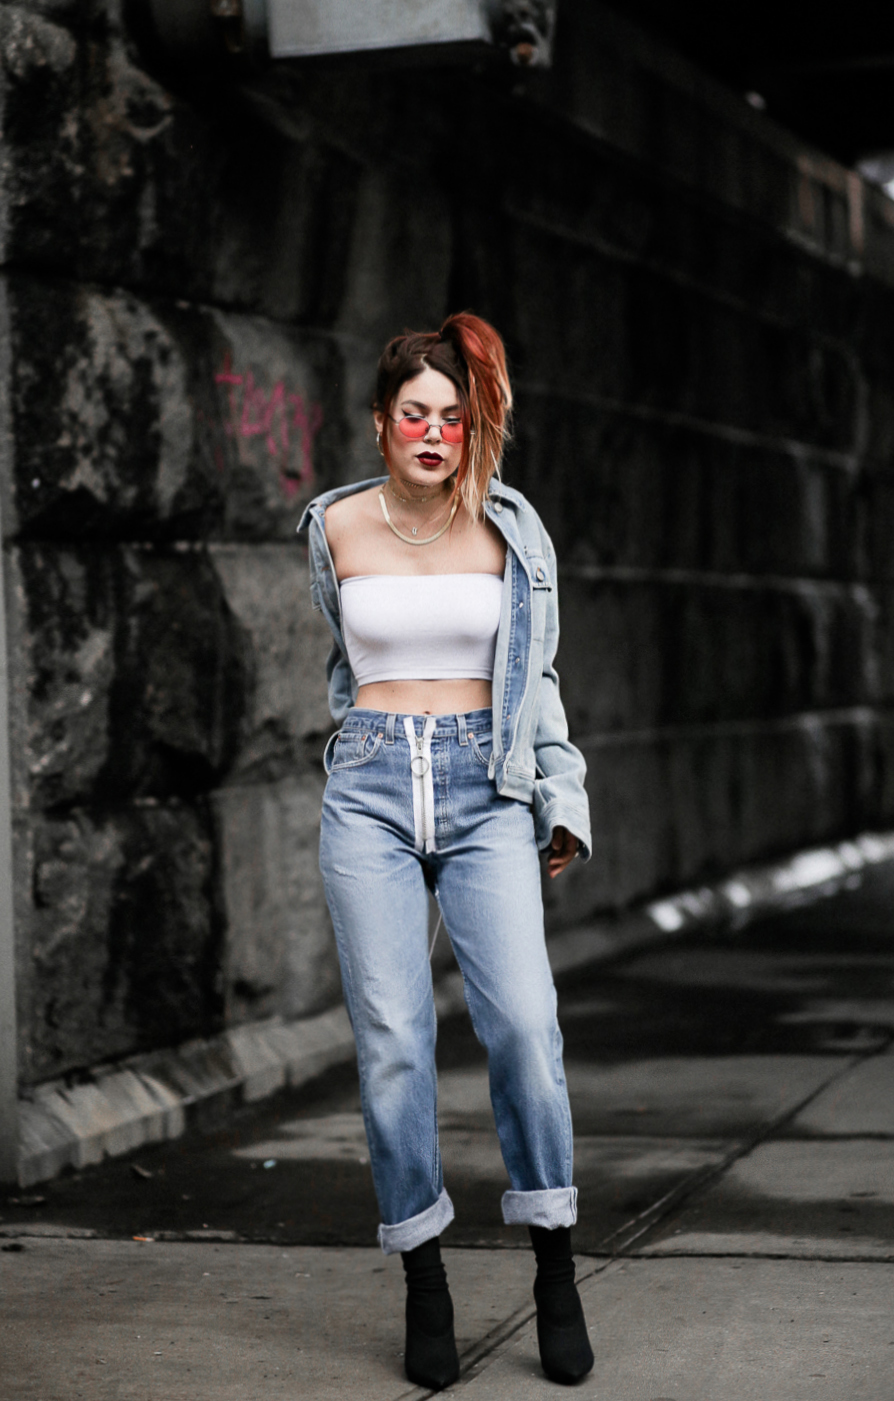 Luanna wearing Off White jeans and MM6 distressed denim jacket with Yeezy boots